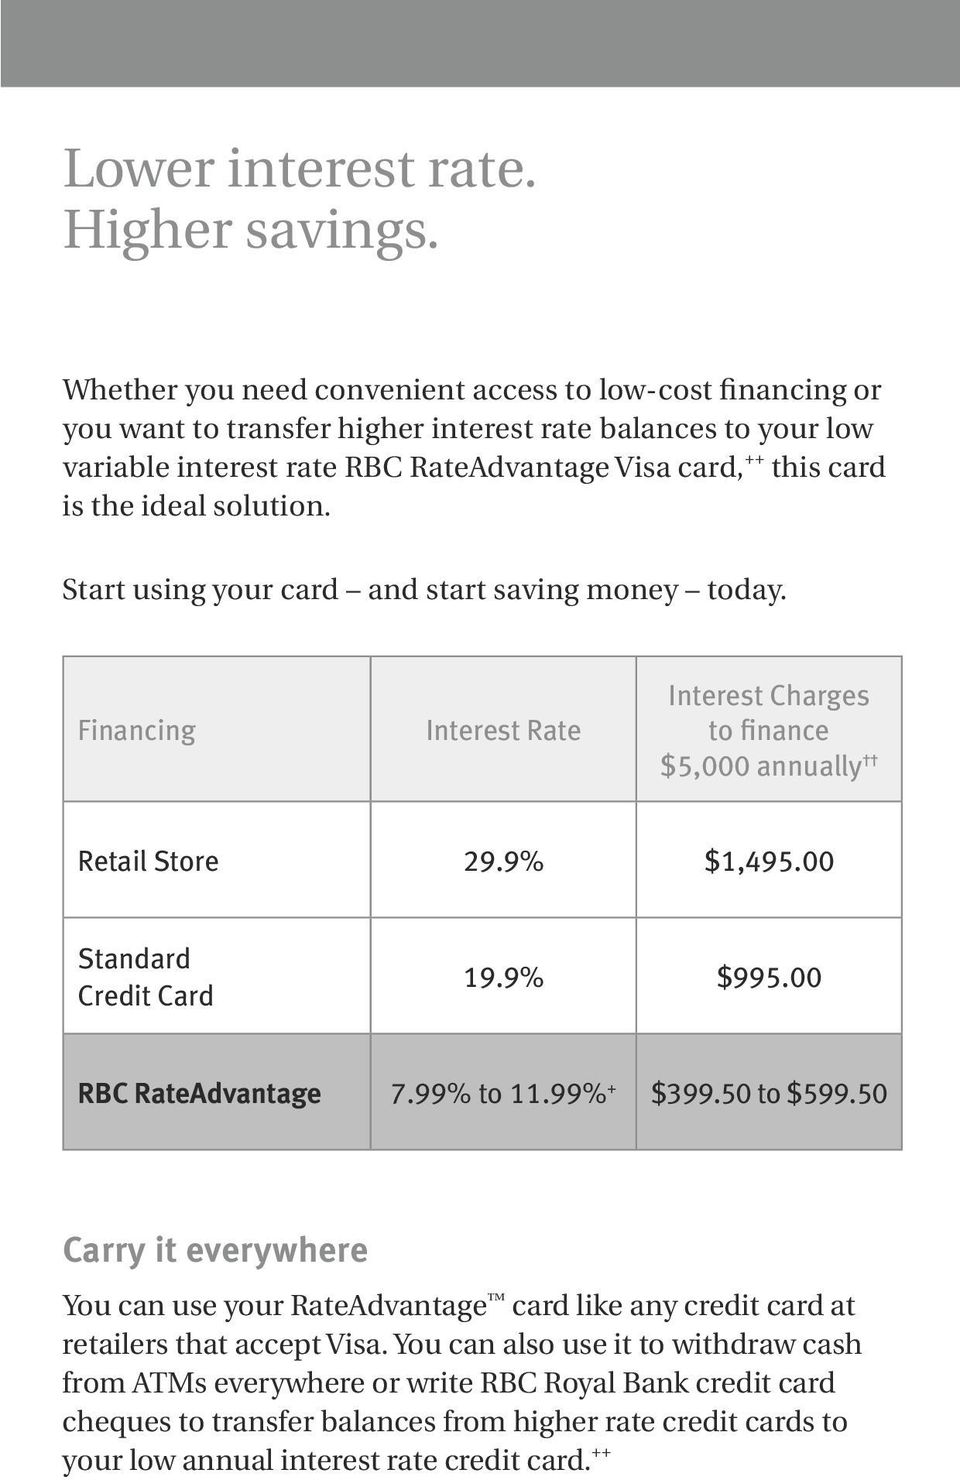 ideal solution. Start using your card and start saving money today. Financing Interest Rate Interest Charges to finance $5,000 annually Retail Store 29.9% $1,495.00 Standard Credit Card 19.9% $995.